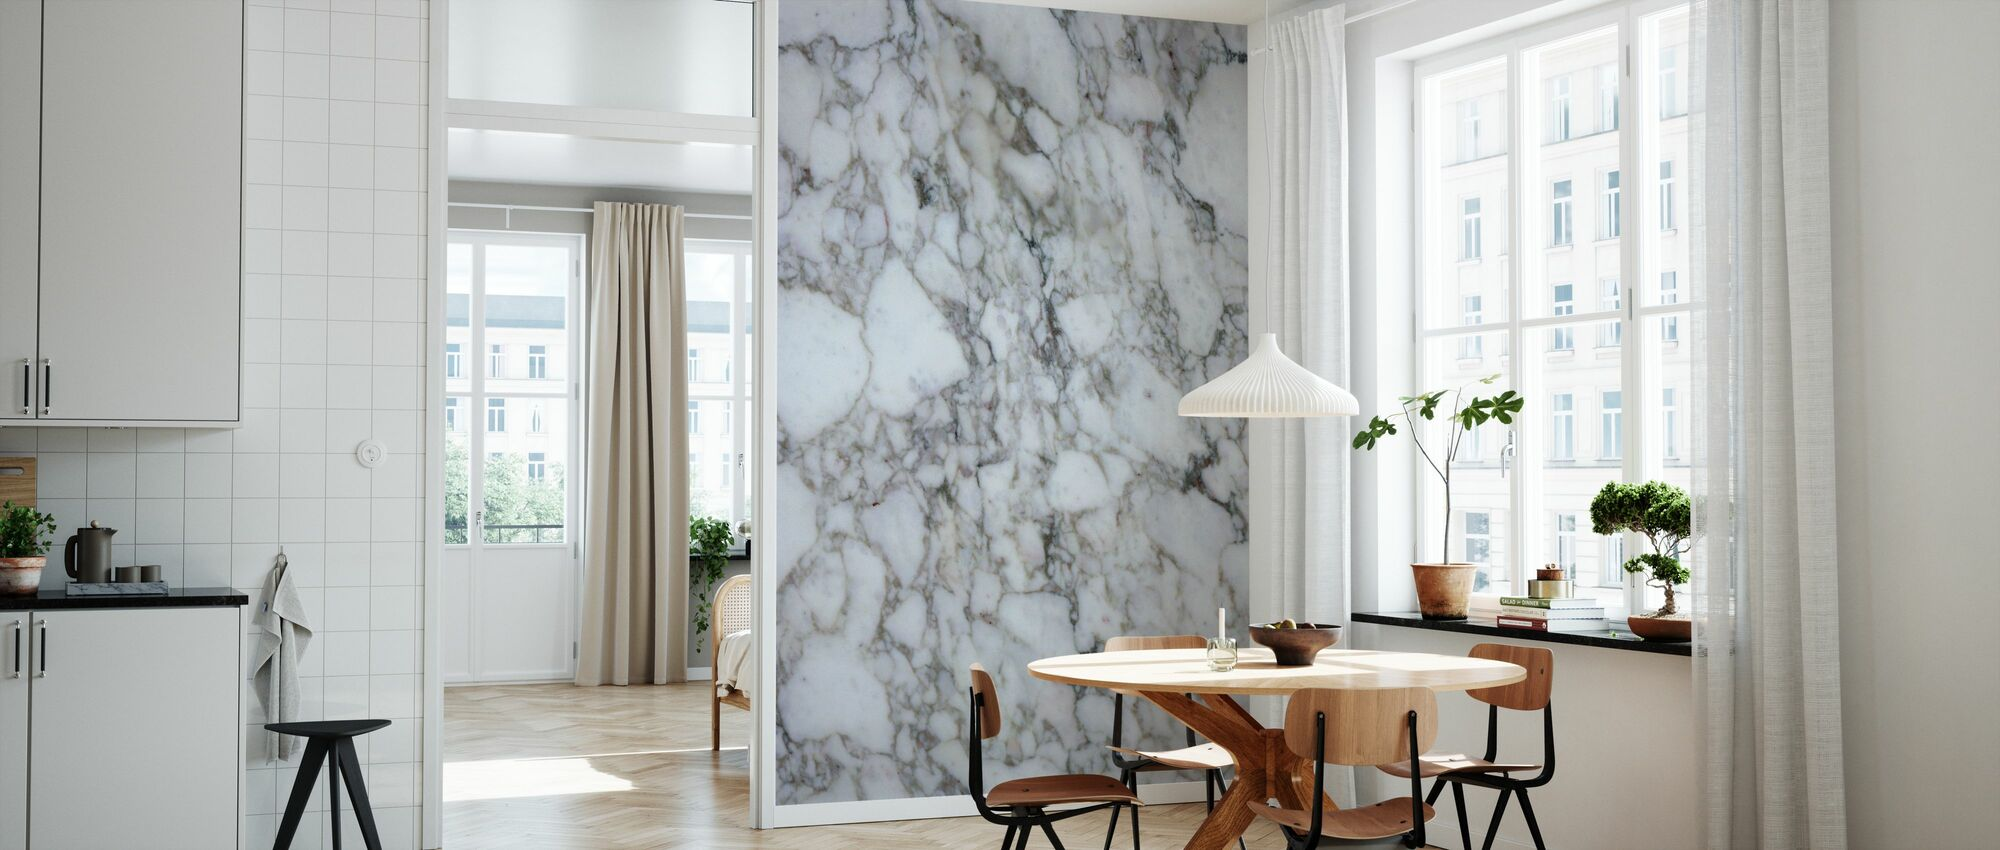 Marble Close Up 2 - Wallpaper - Kitchen